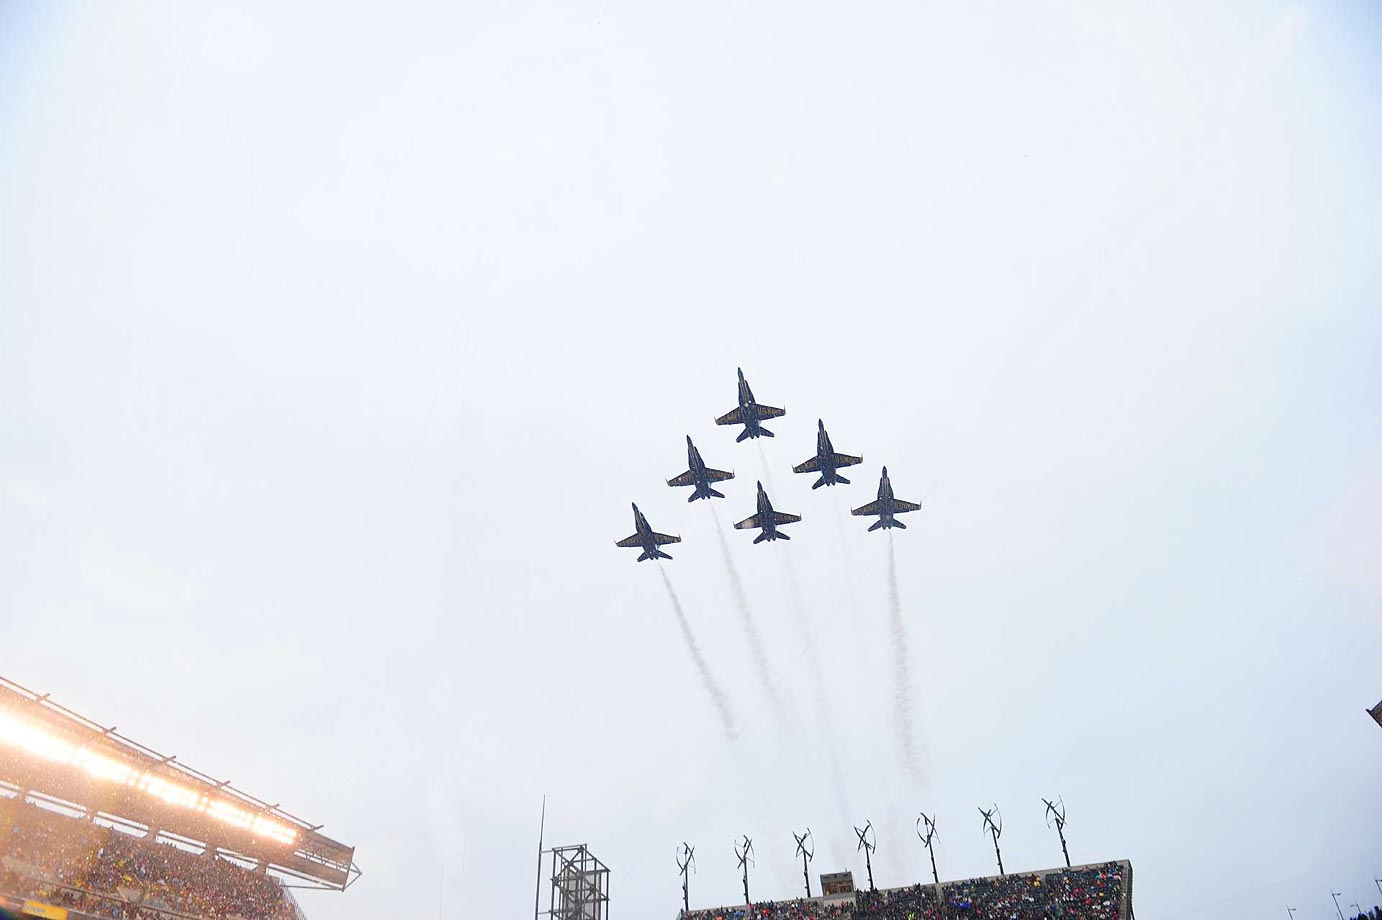 U.S. Naval Jets perform a flyover during pregame festivities before the Army-Navy game at Lincoln Financial Field in Philadelphia in December 2013.